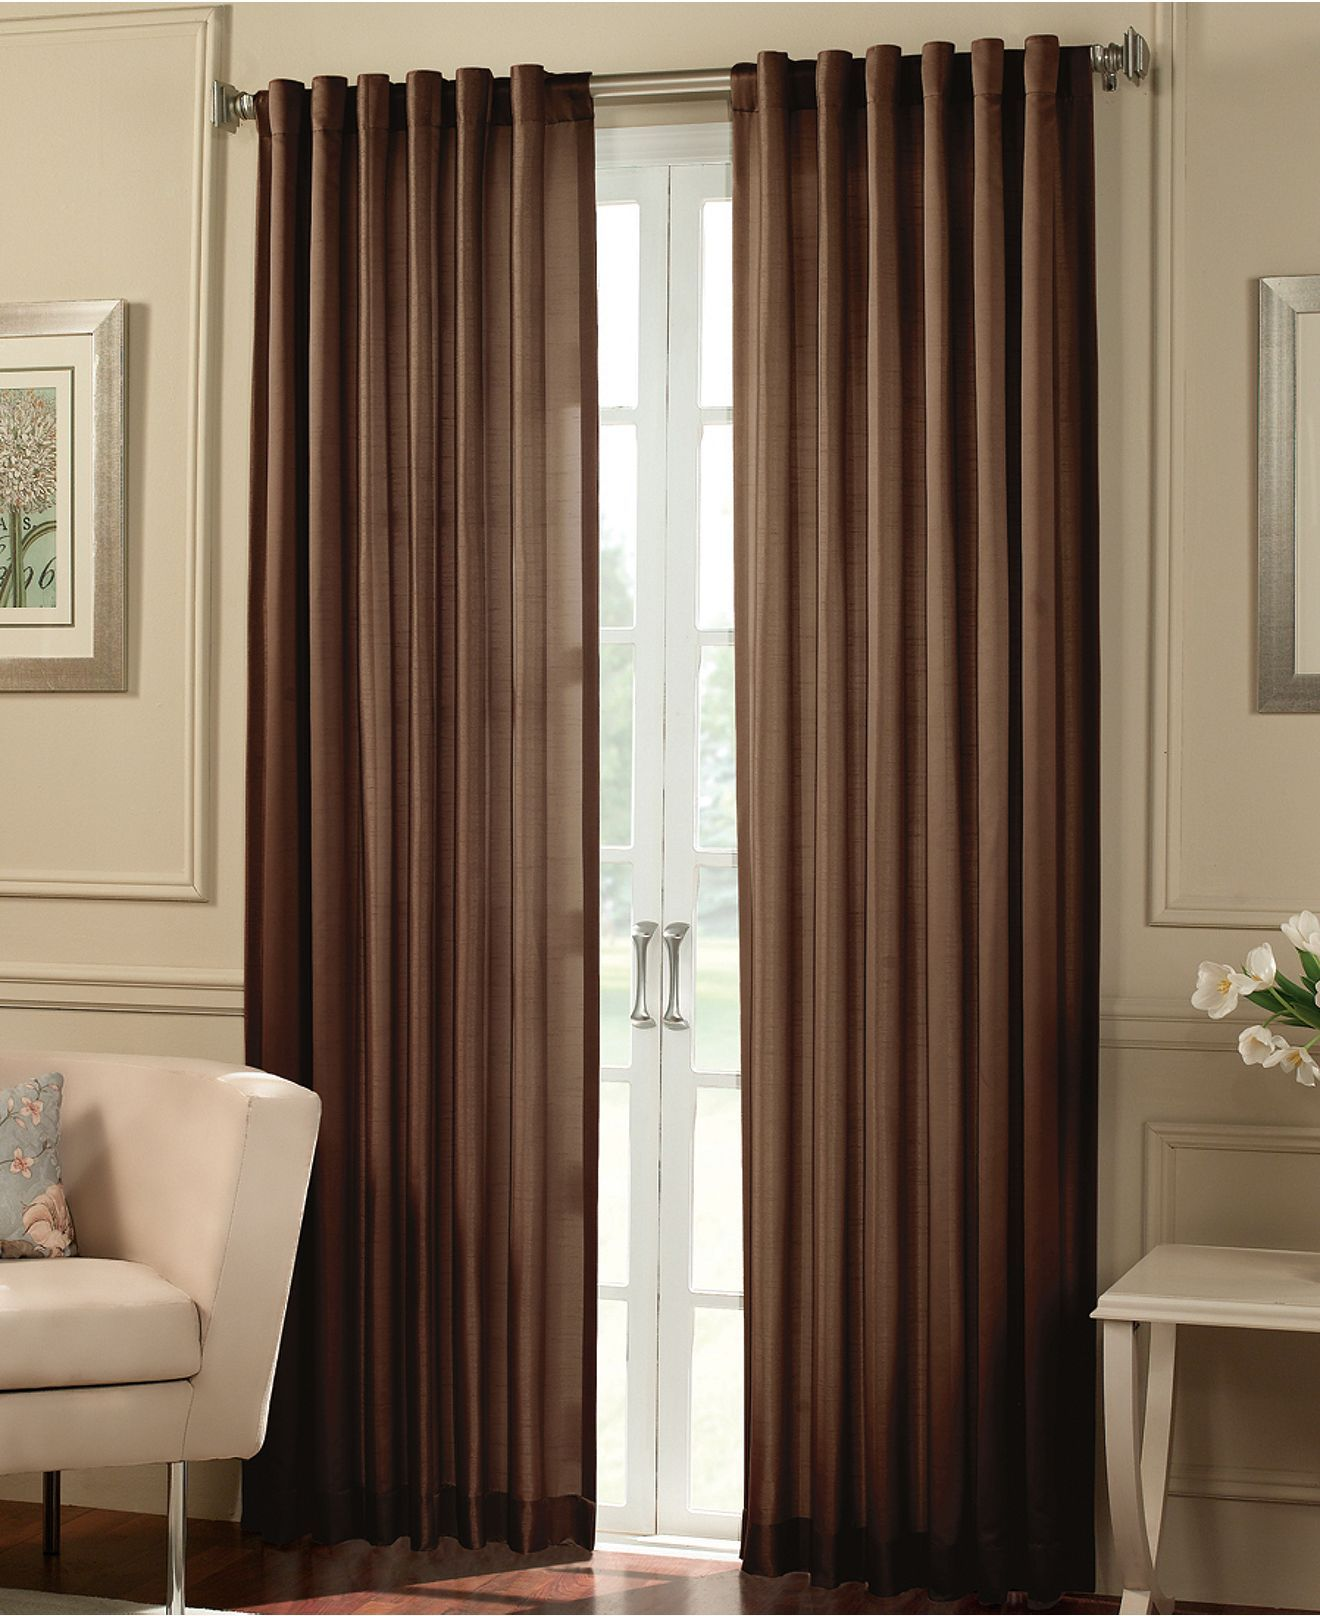 Peri Window Treatments Cooper 50 X 84 Panel Curtains Drapes For The Home Curtains Living Room Living Room Decor Curtains Dining Room Window Treatments #style #curtains #living #room